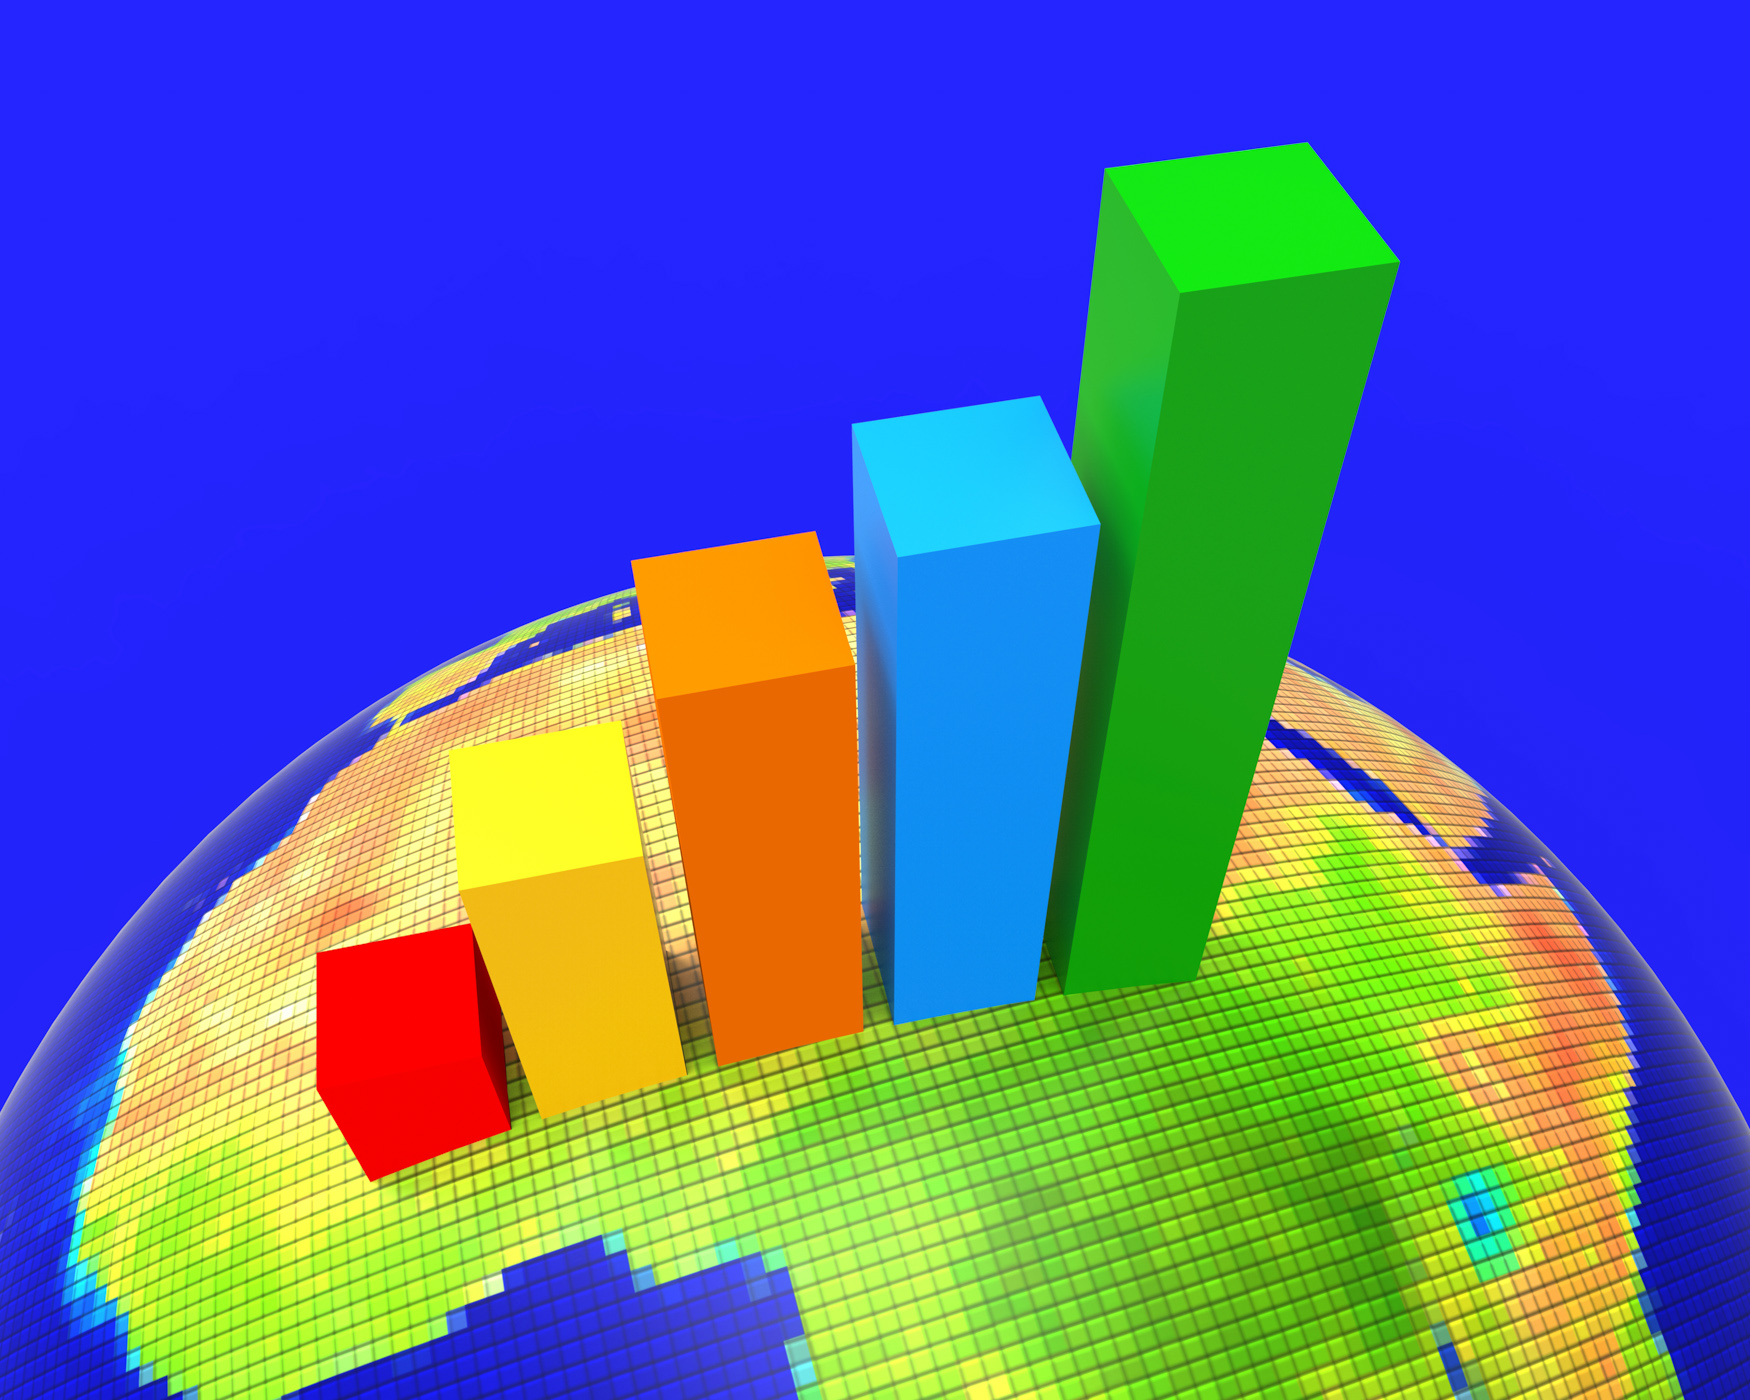 Africa Graph Indicates Financial Report And Analysis, Reports, Infochart, Infograph, Information, HQ Photo